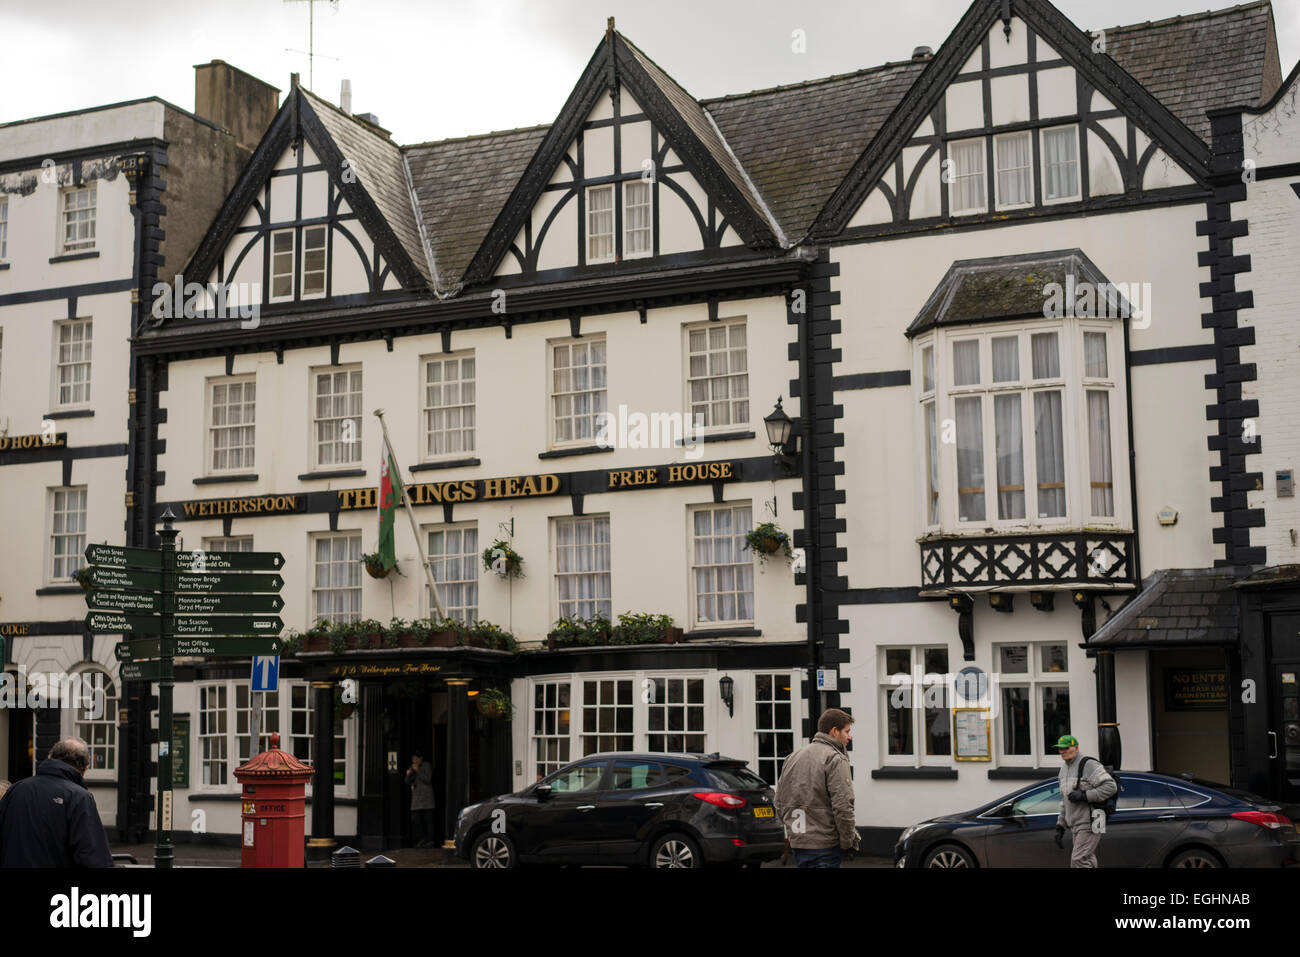 Kings Head Hotel in Monmouth, Wales - Stock Image